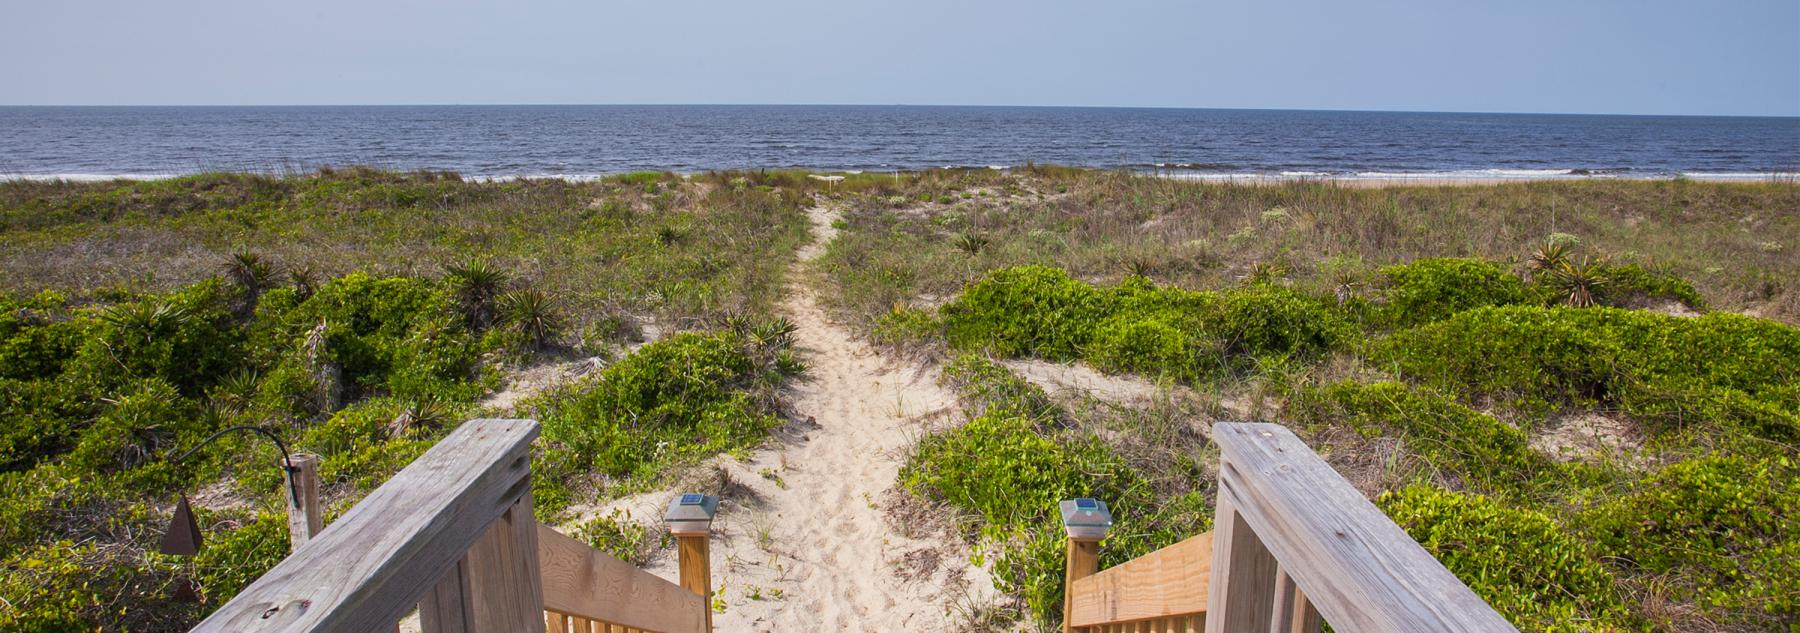 View of Oak Island beach from a vacation rental home